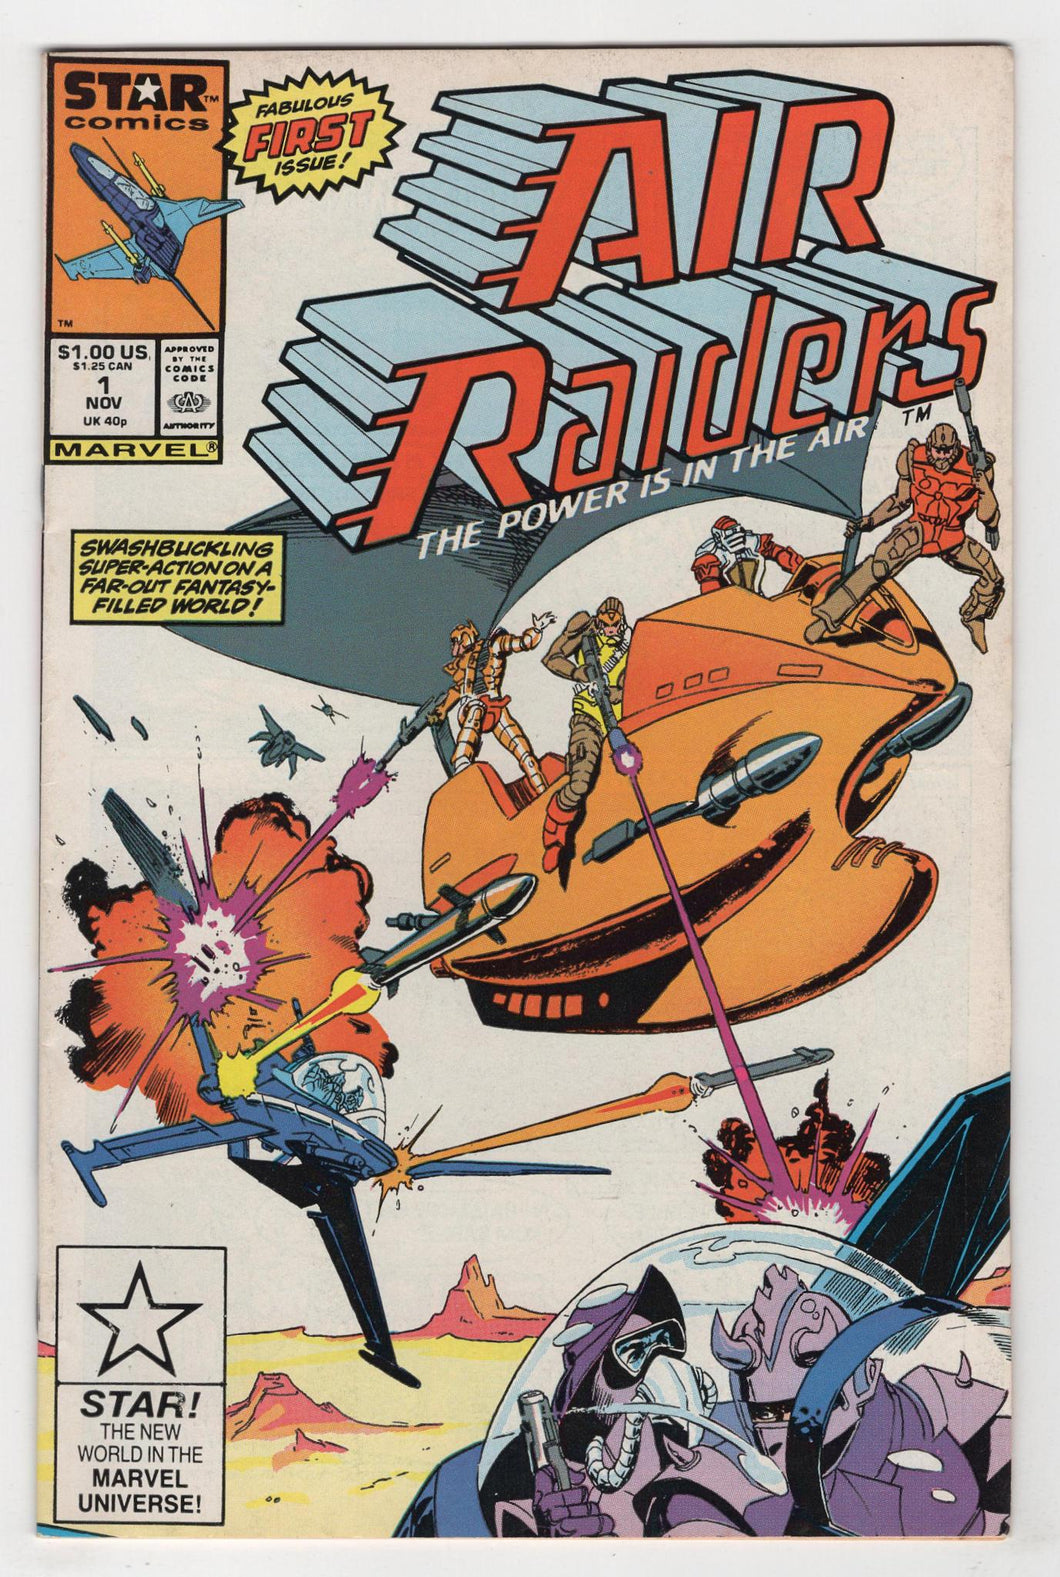 Air Raiders #1 Cover Front